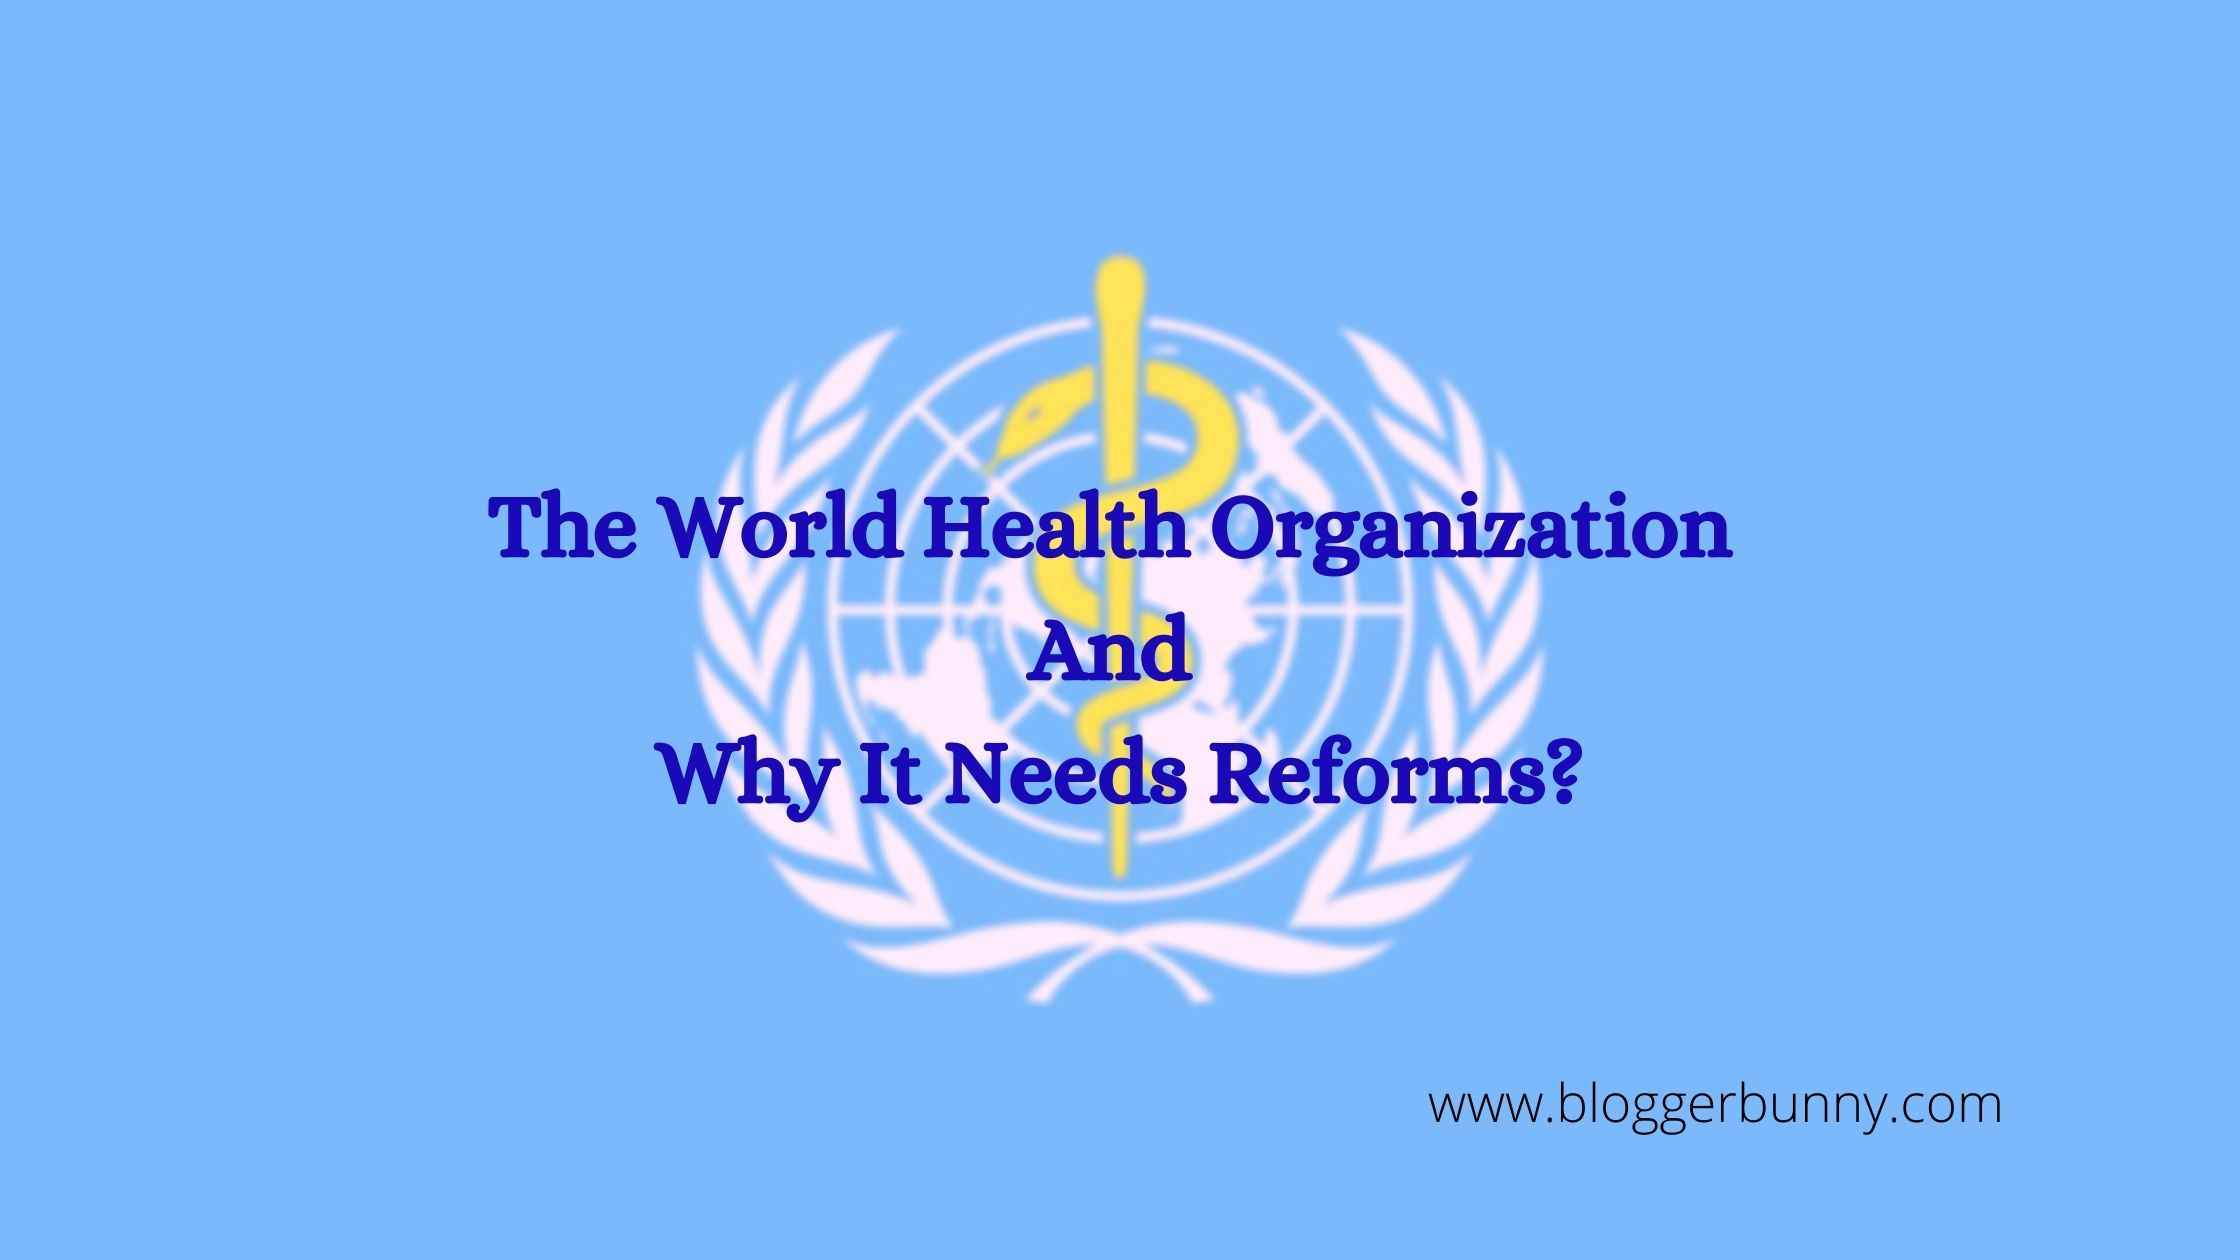 The World Health Organization And Why It Needs Reforms?